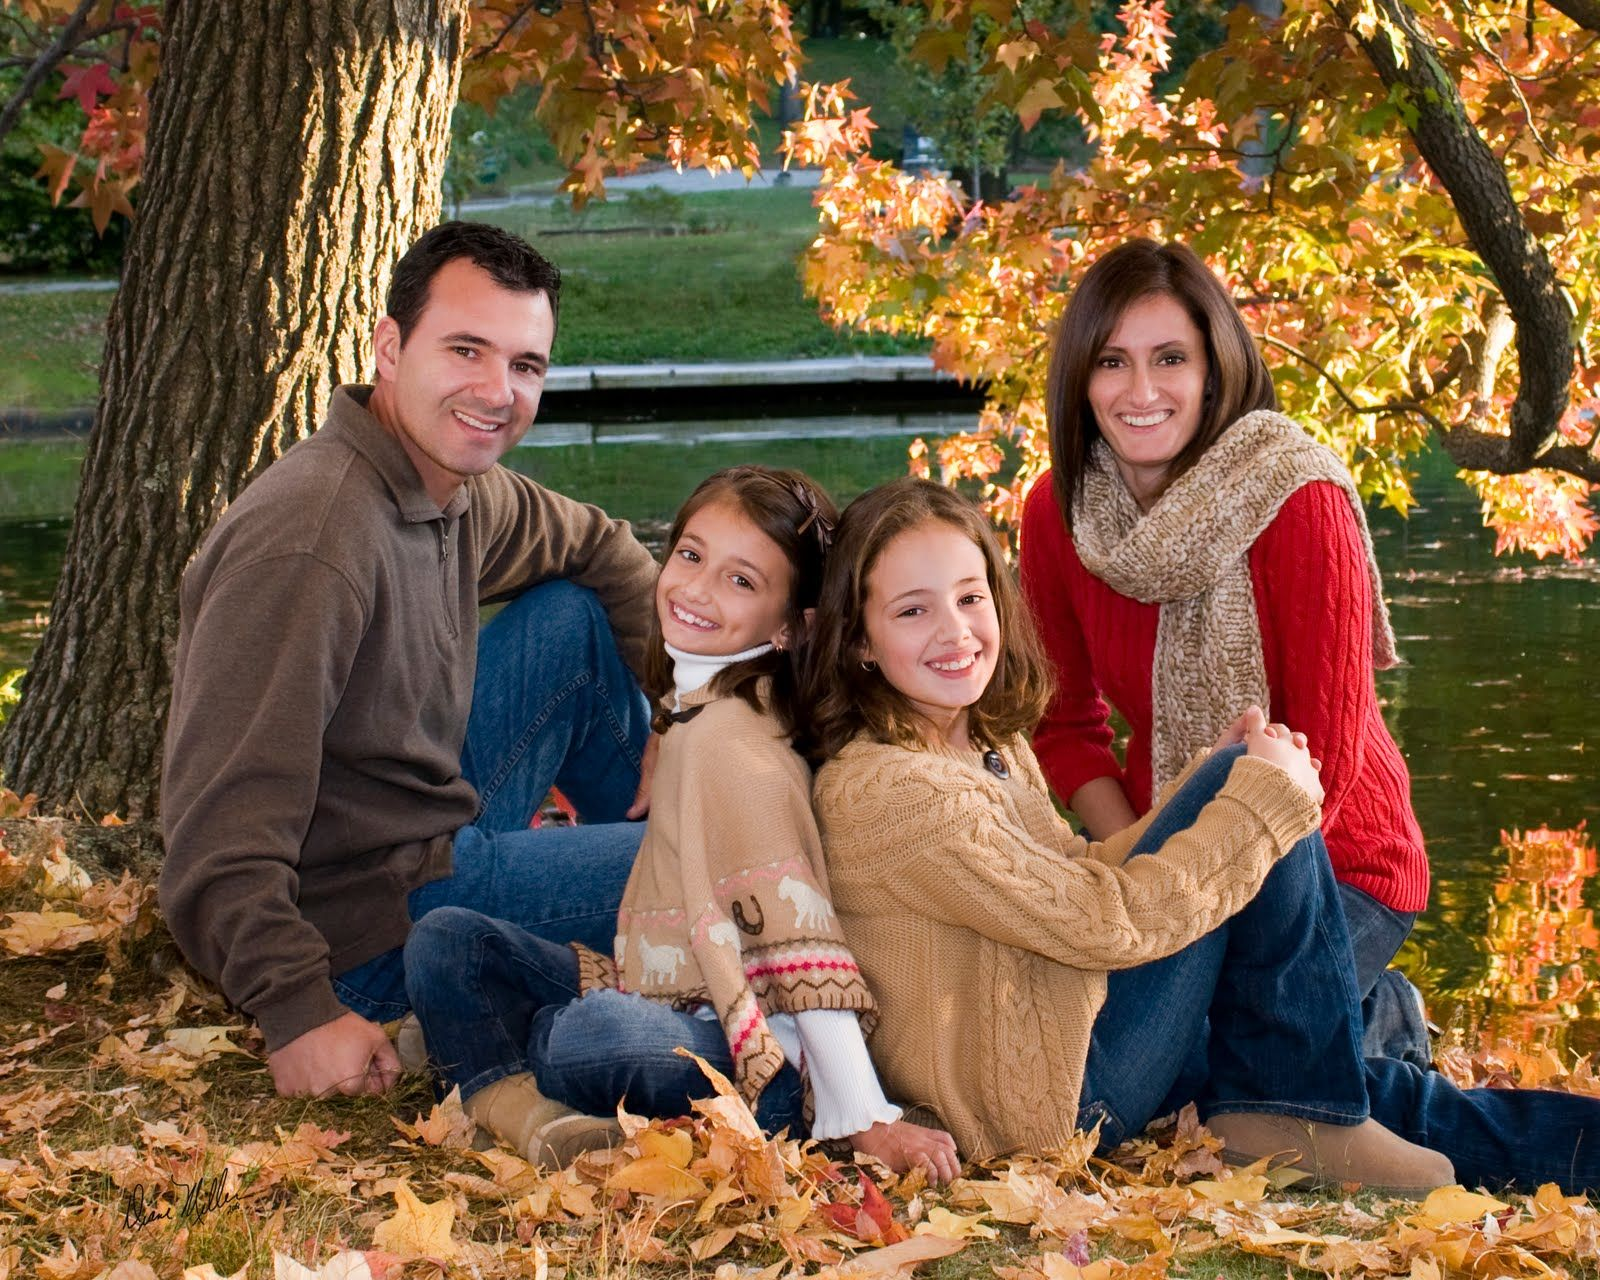 Living Room Family Of Four Picture Ideas 1000 images about family pictures ideas on pinterest extended posing fall family